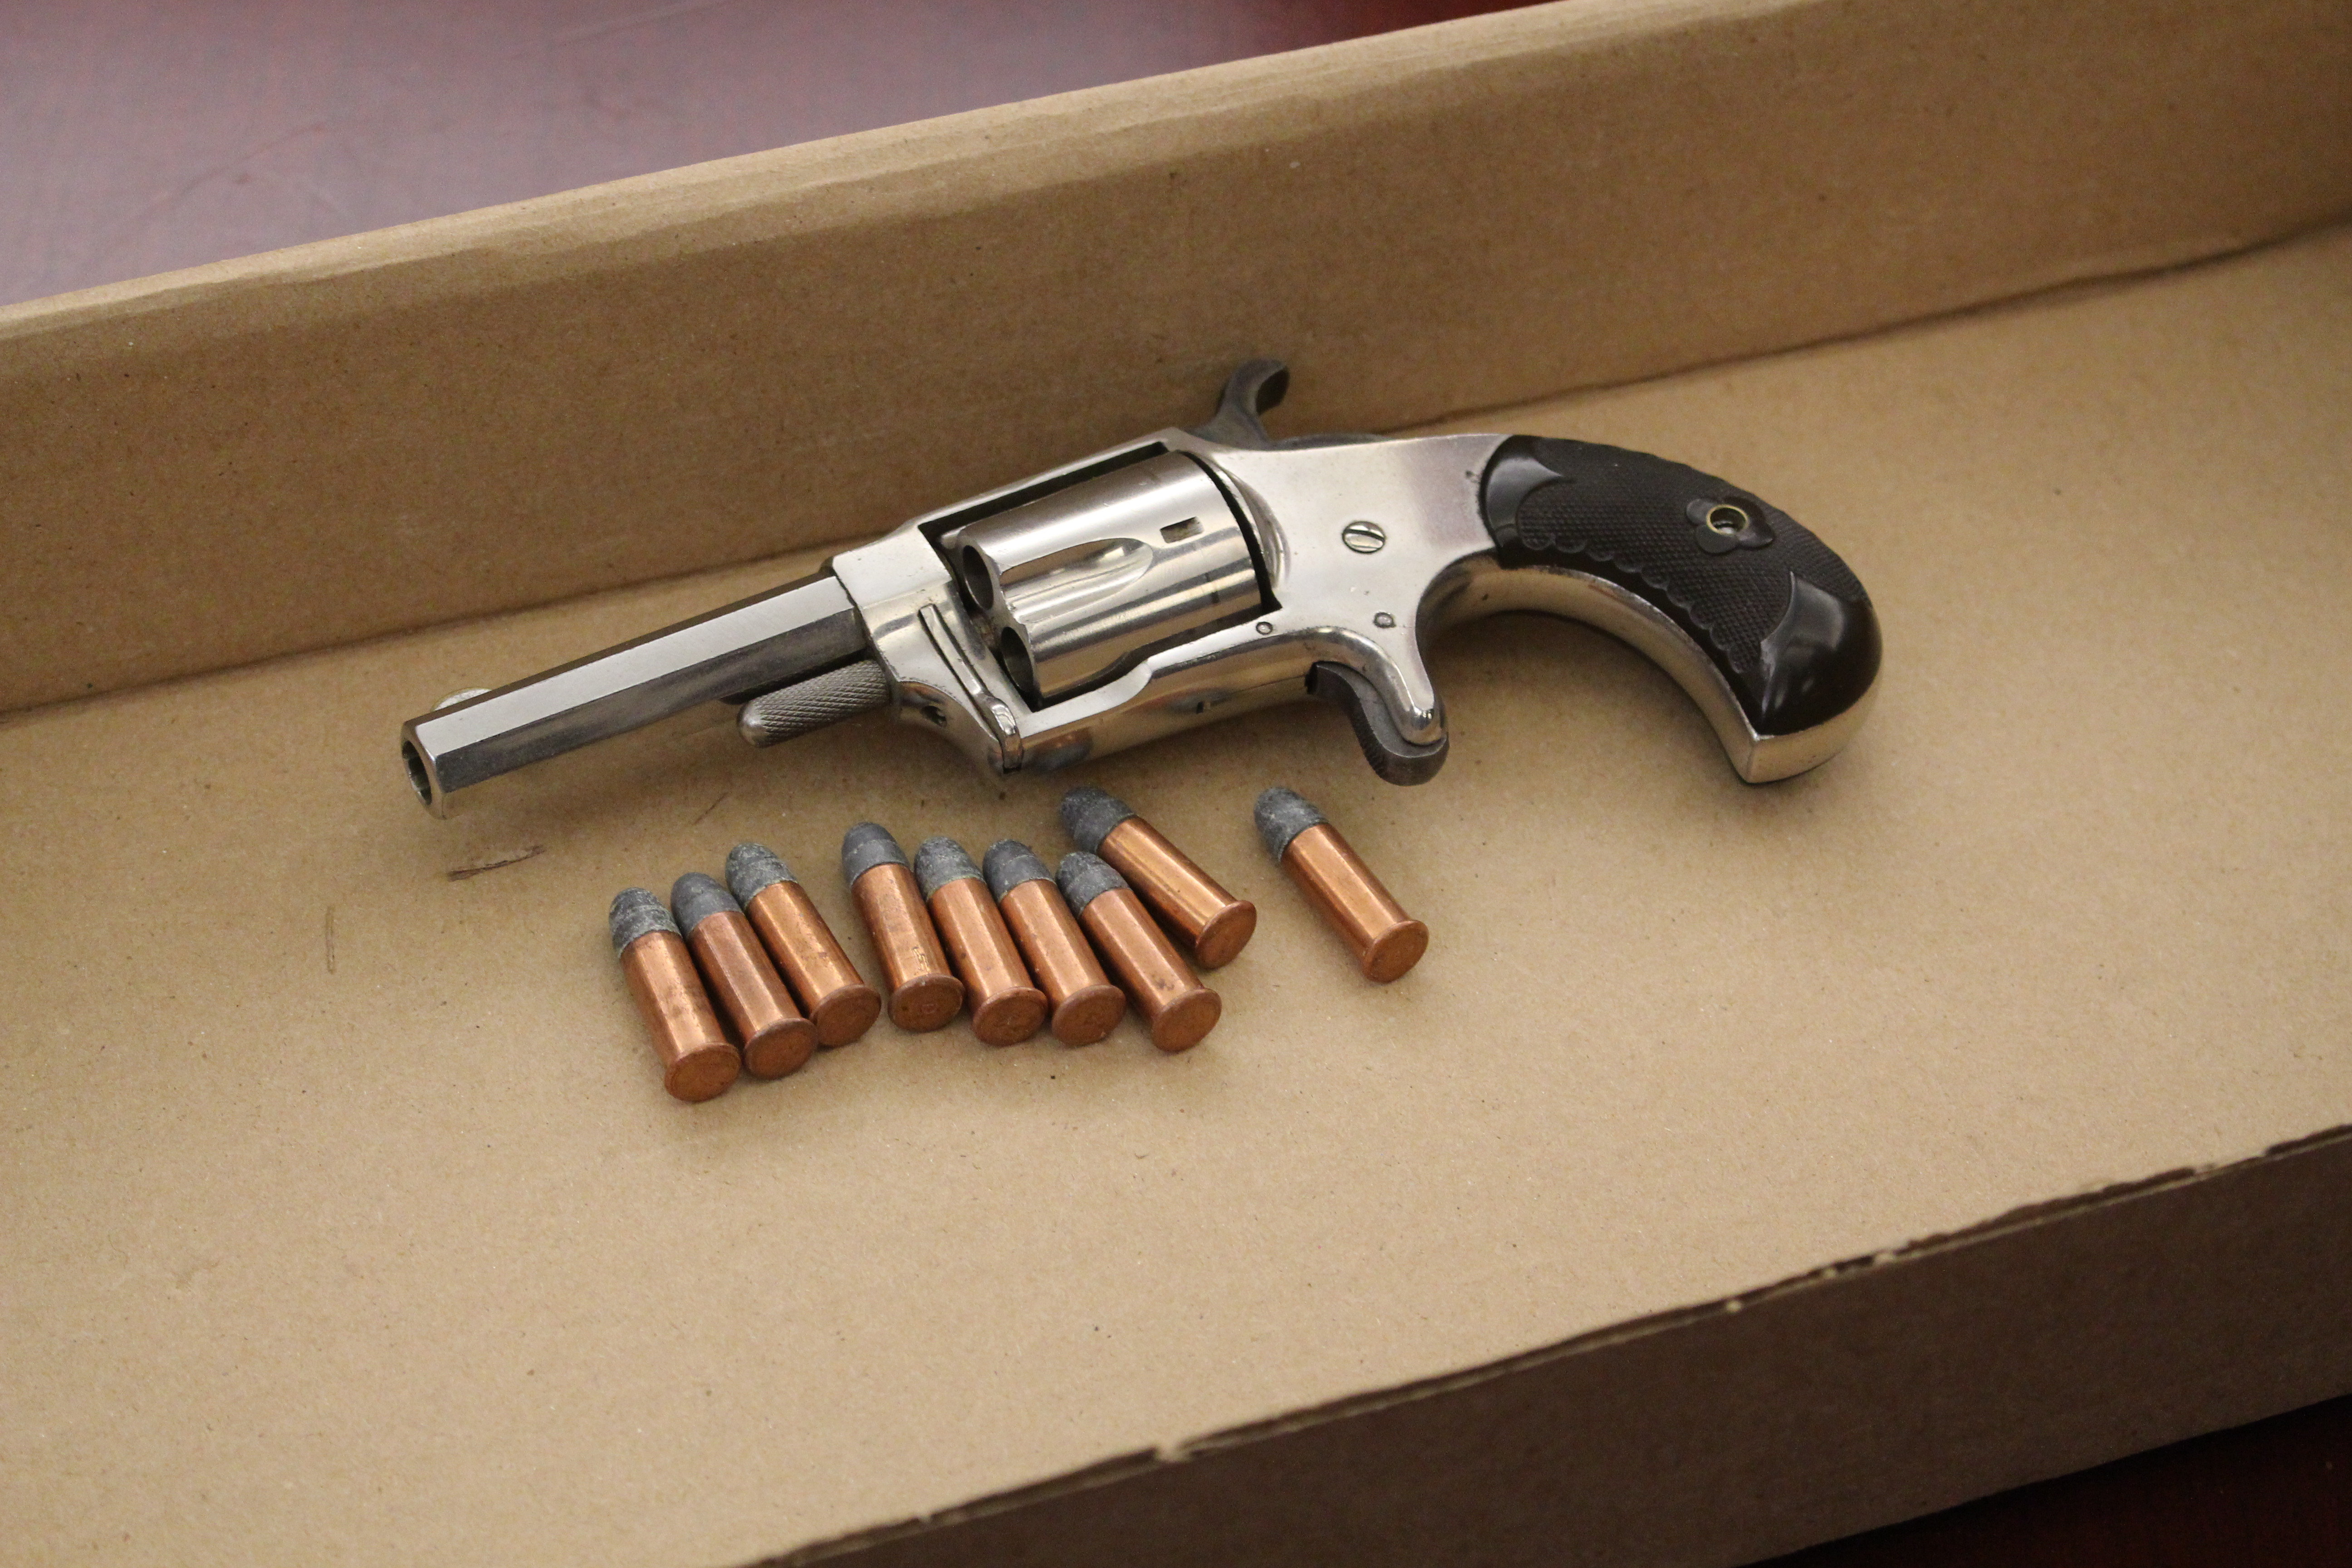 A 32 caliber revolver seized by Windsor Police during a street check, November 19, 2015. (Photo by Maureen Revait)